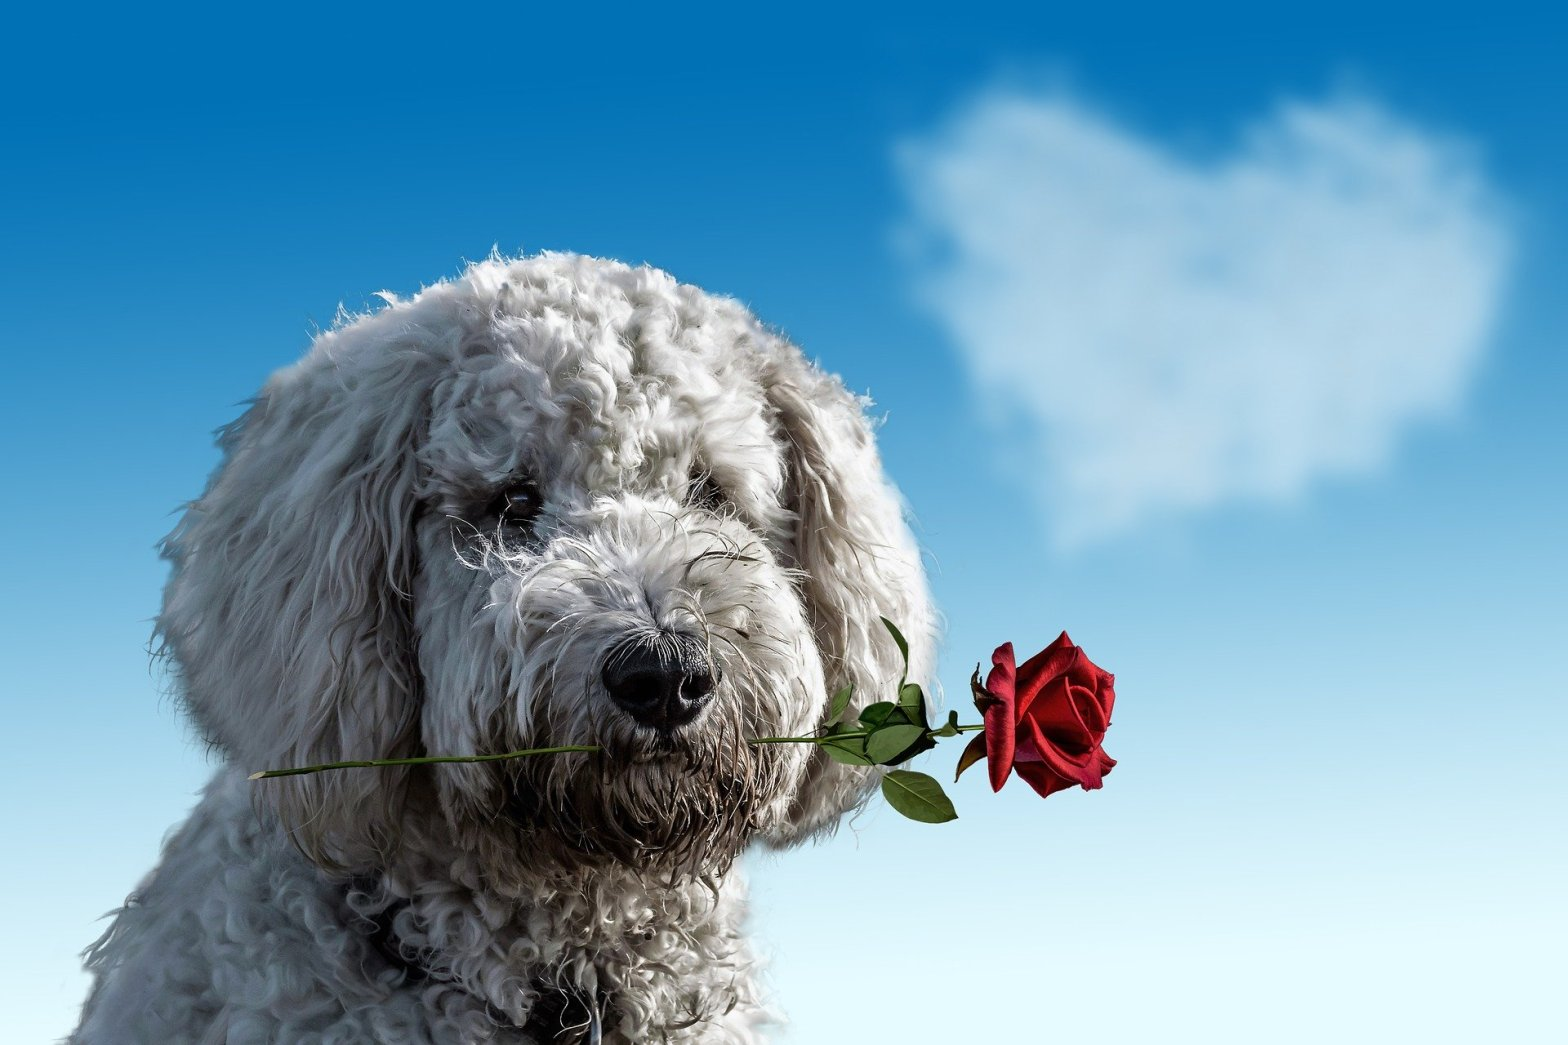 Emotional support dog with a rose in its mouth